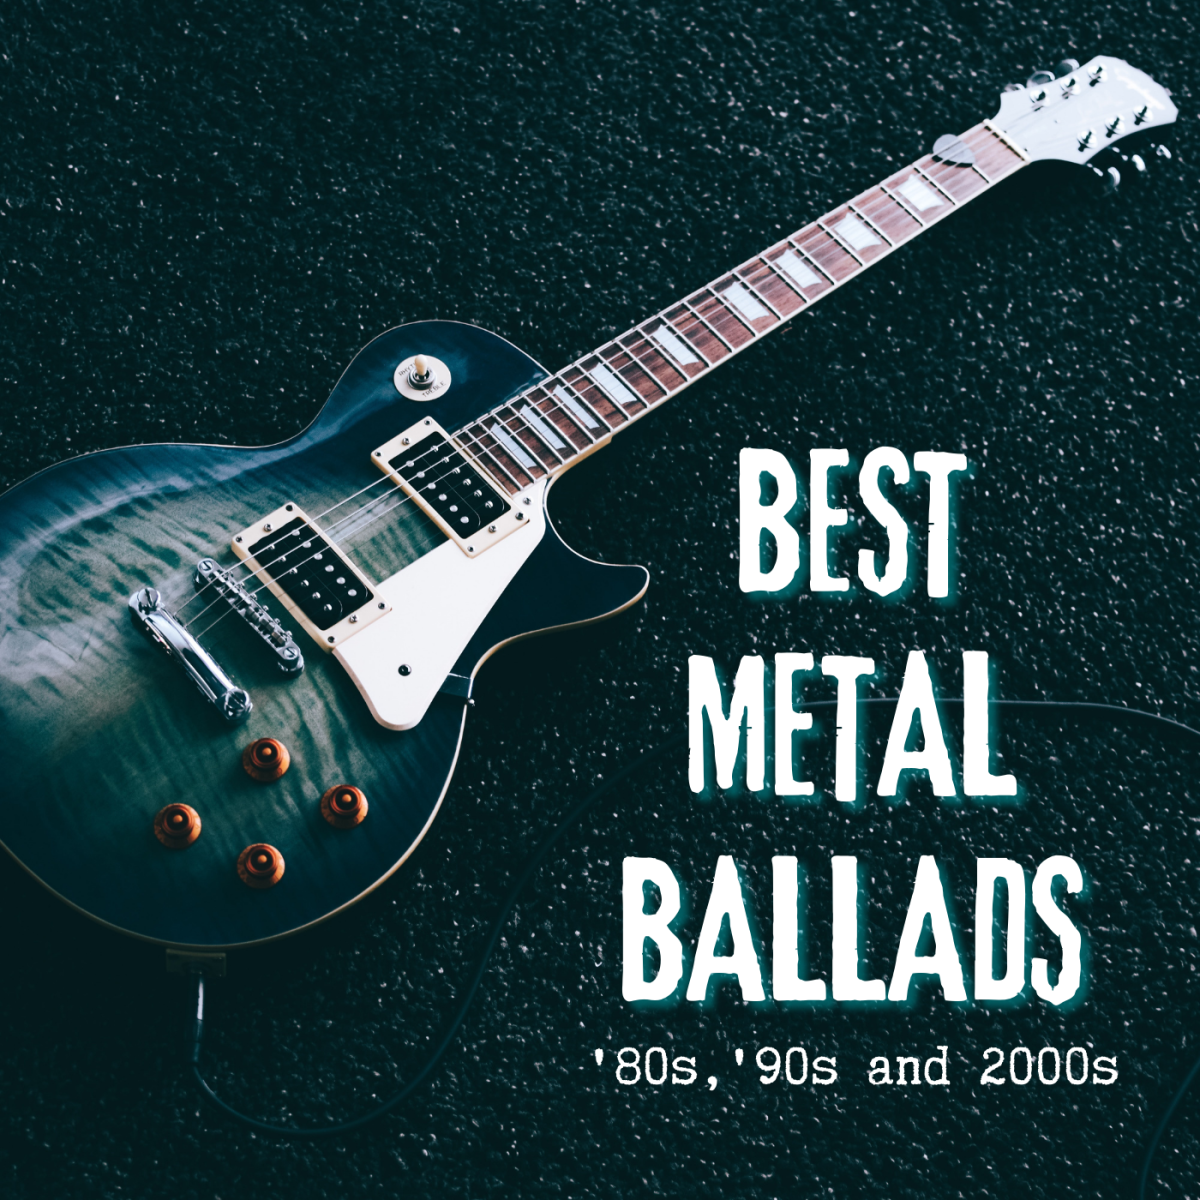 Check out a list of the top 100 metal ballads from the '80s through the 2000s.